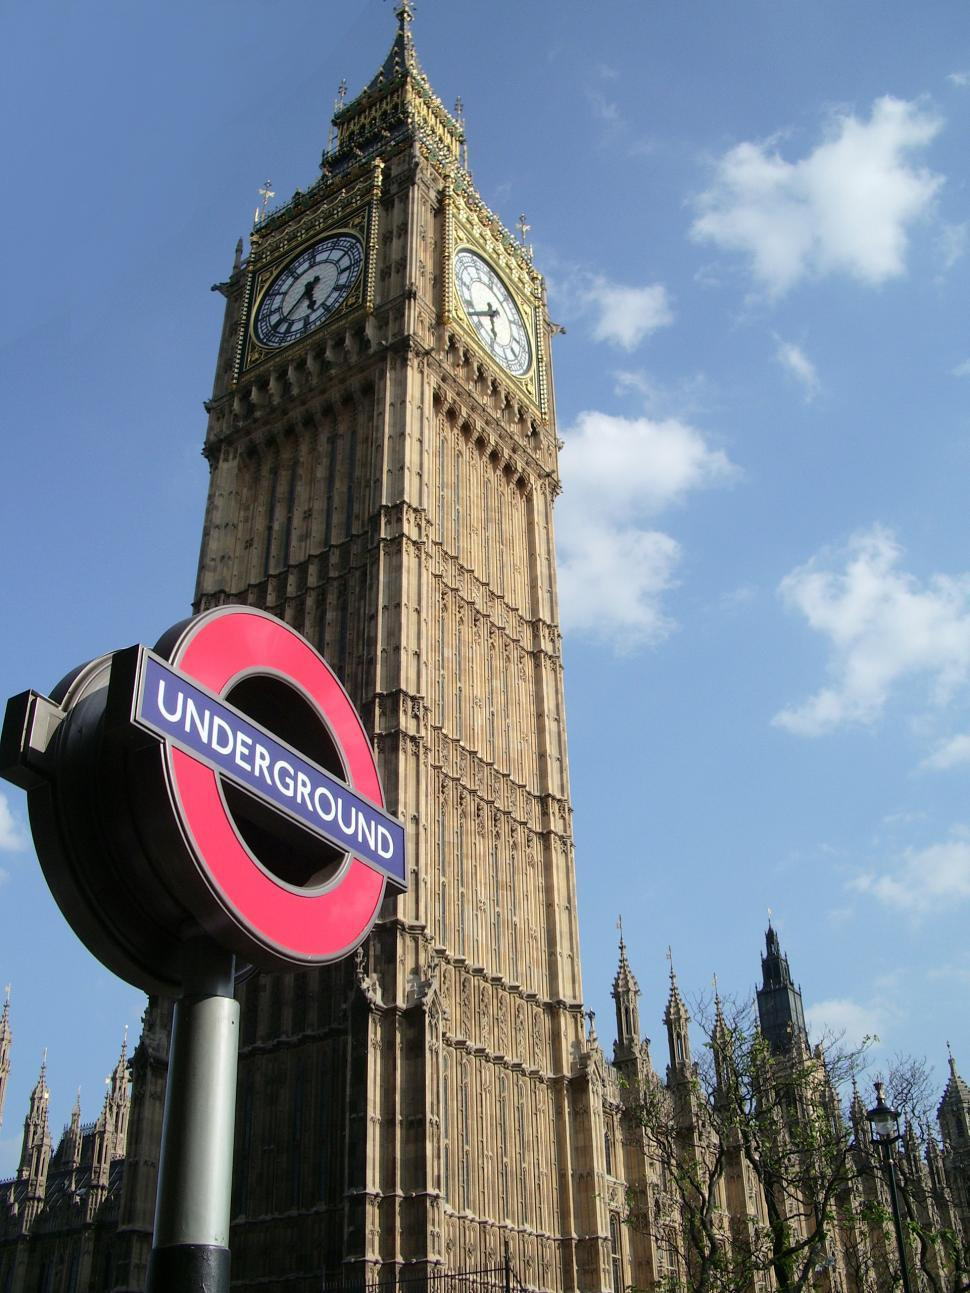 Download Free Stock HD Photo of Underground tube sign near the Big Ben in London Online